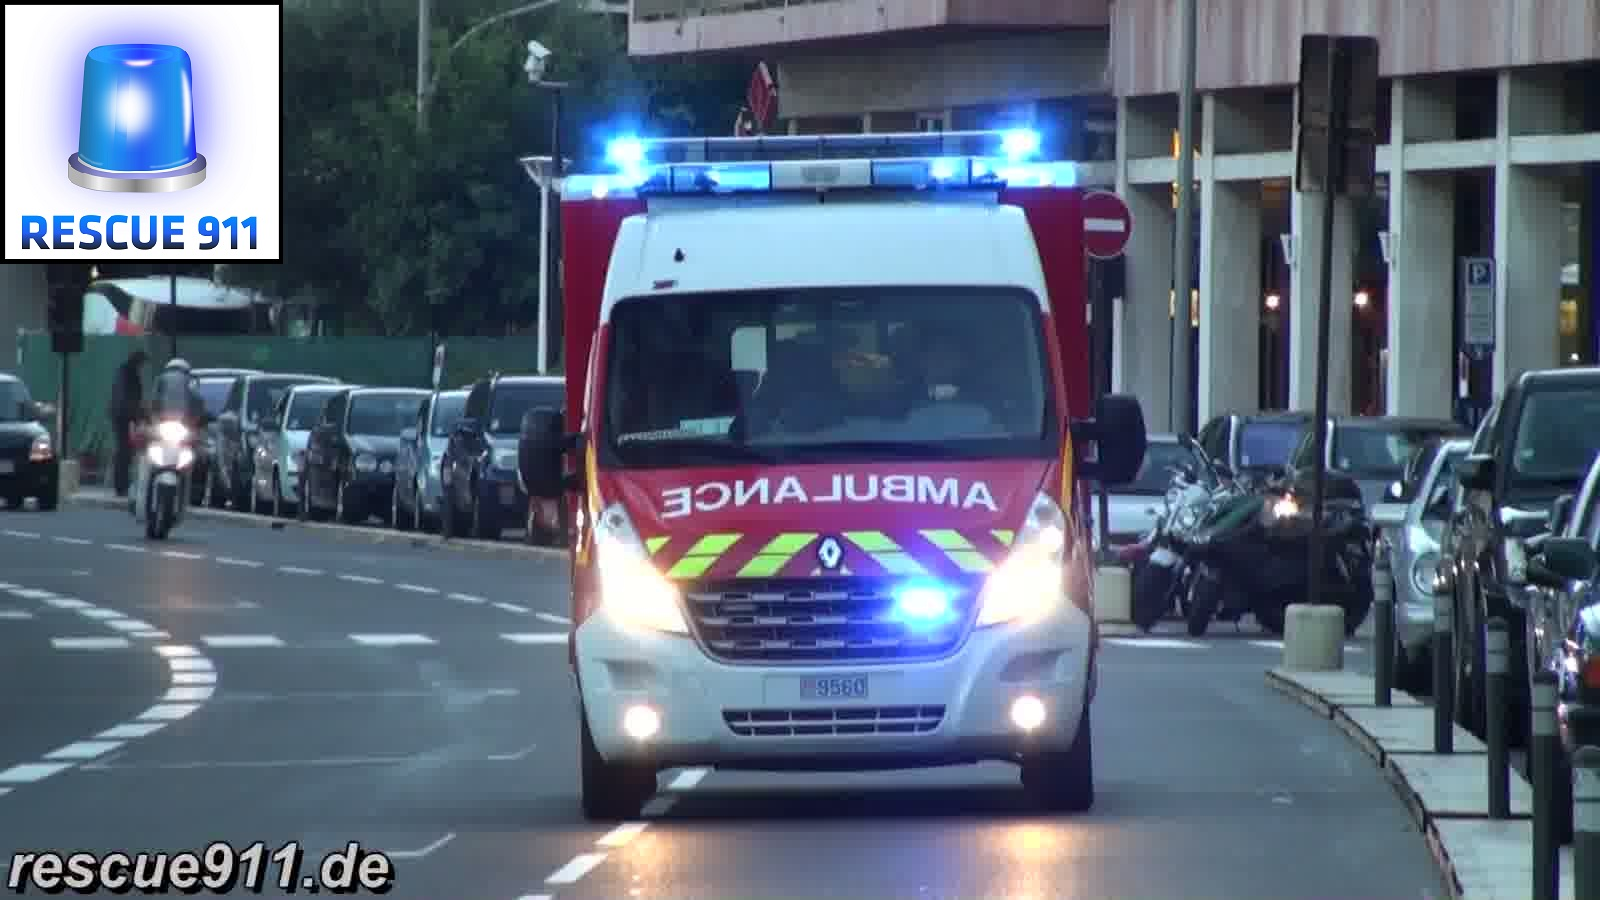 Sapeurs Pompiers de Monaco (collection) (stream)